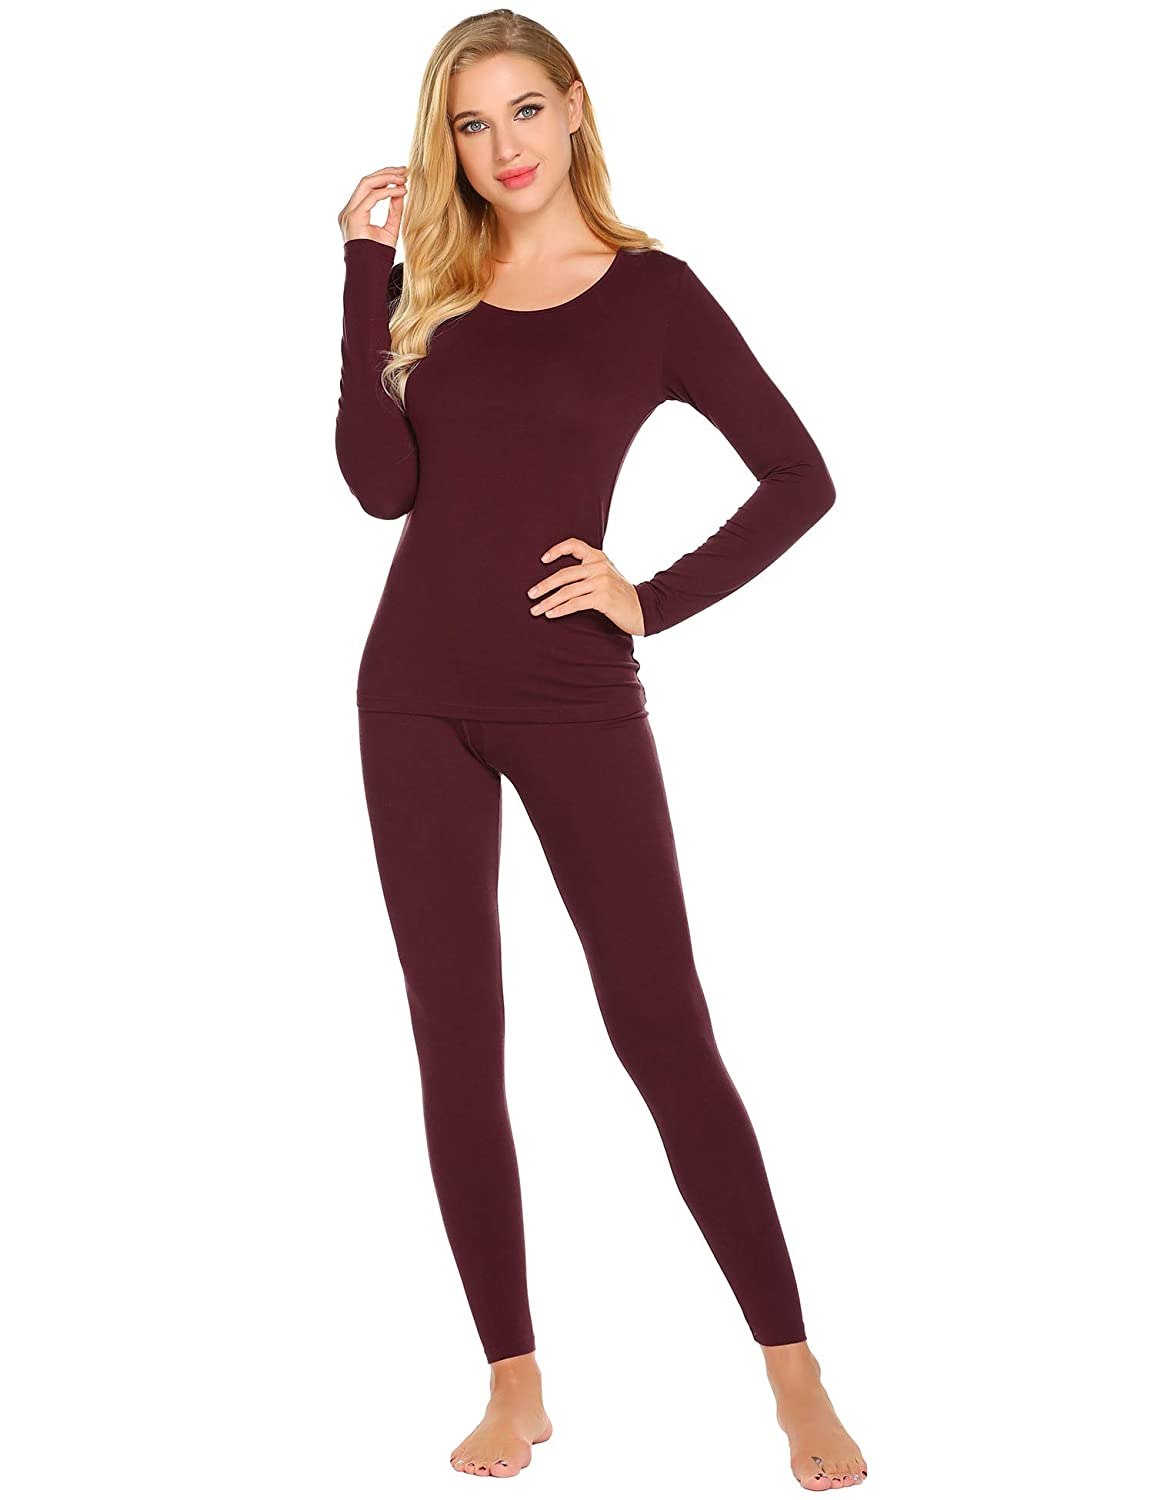 Ekouaer Women's Slimming Top & Bottom Pajama Long Thermal Underwear Winter Base Layering Set S-XXXL EKV007070